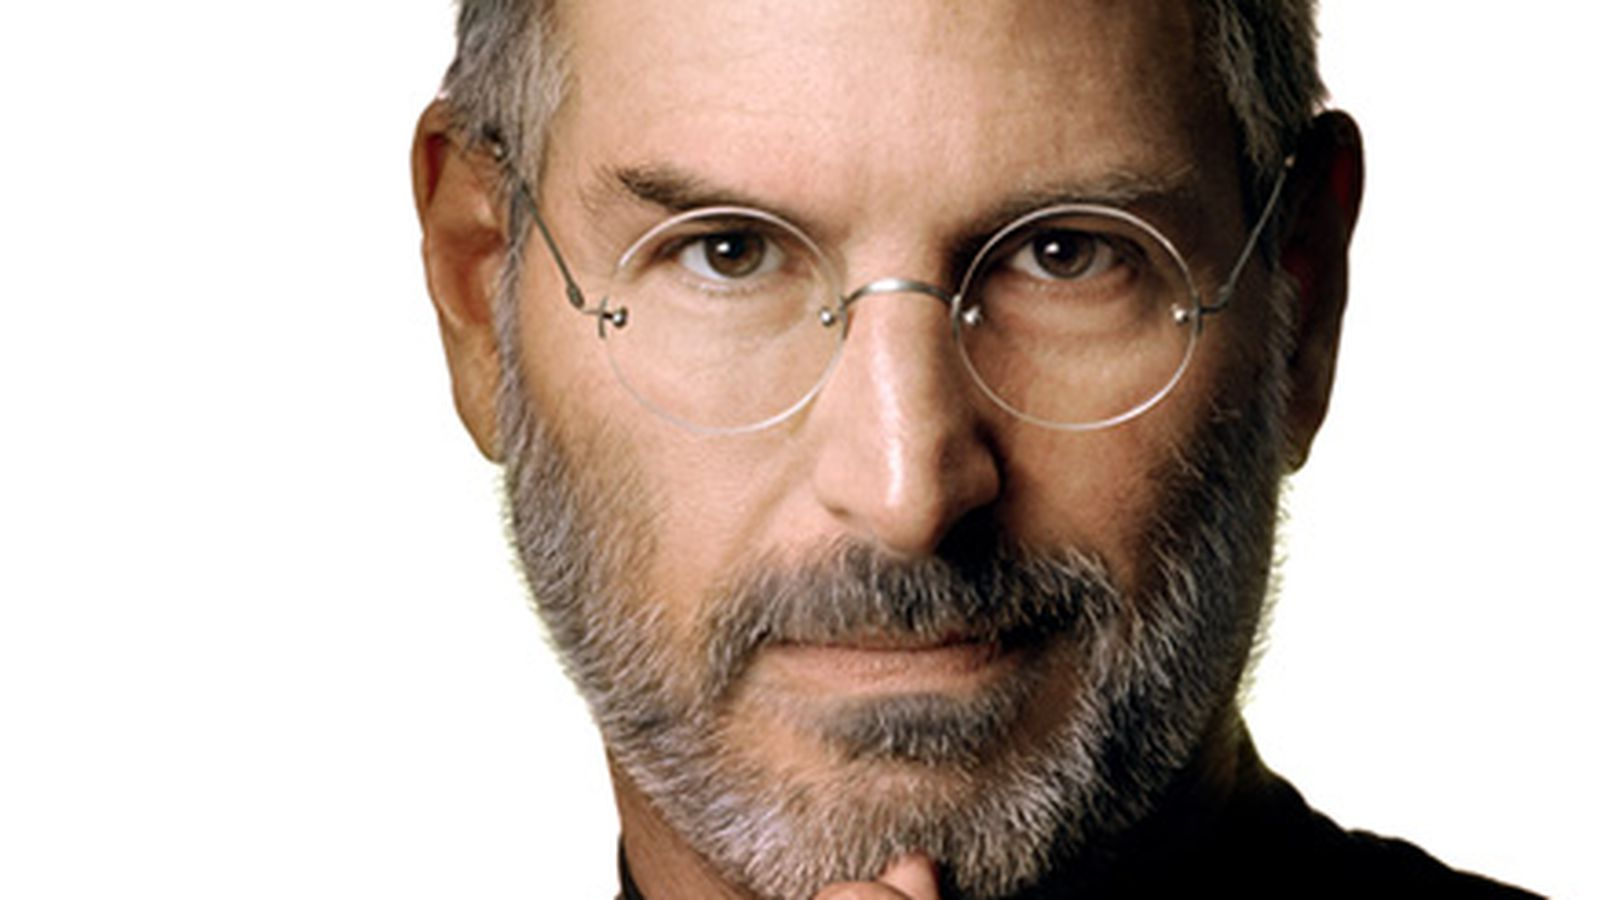 Steve Jobs as Apples CEO a retrospective in products